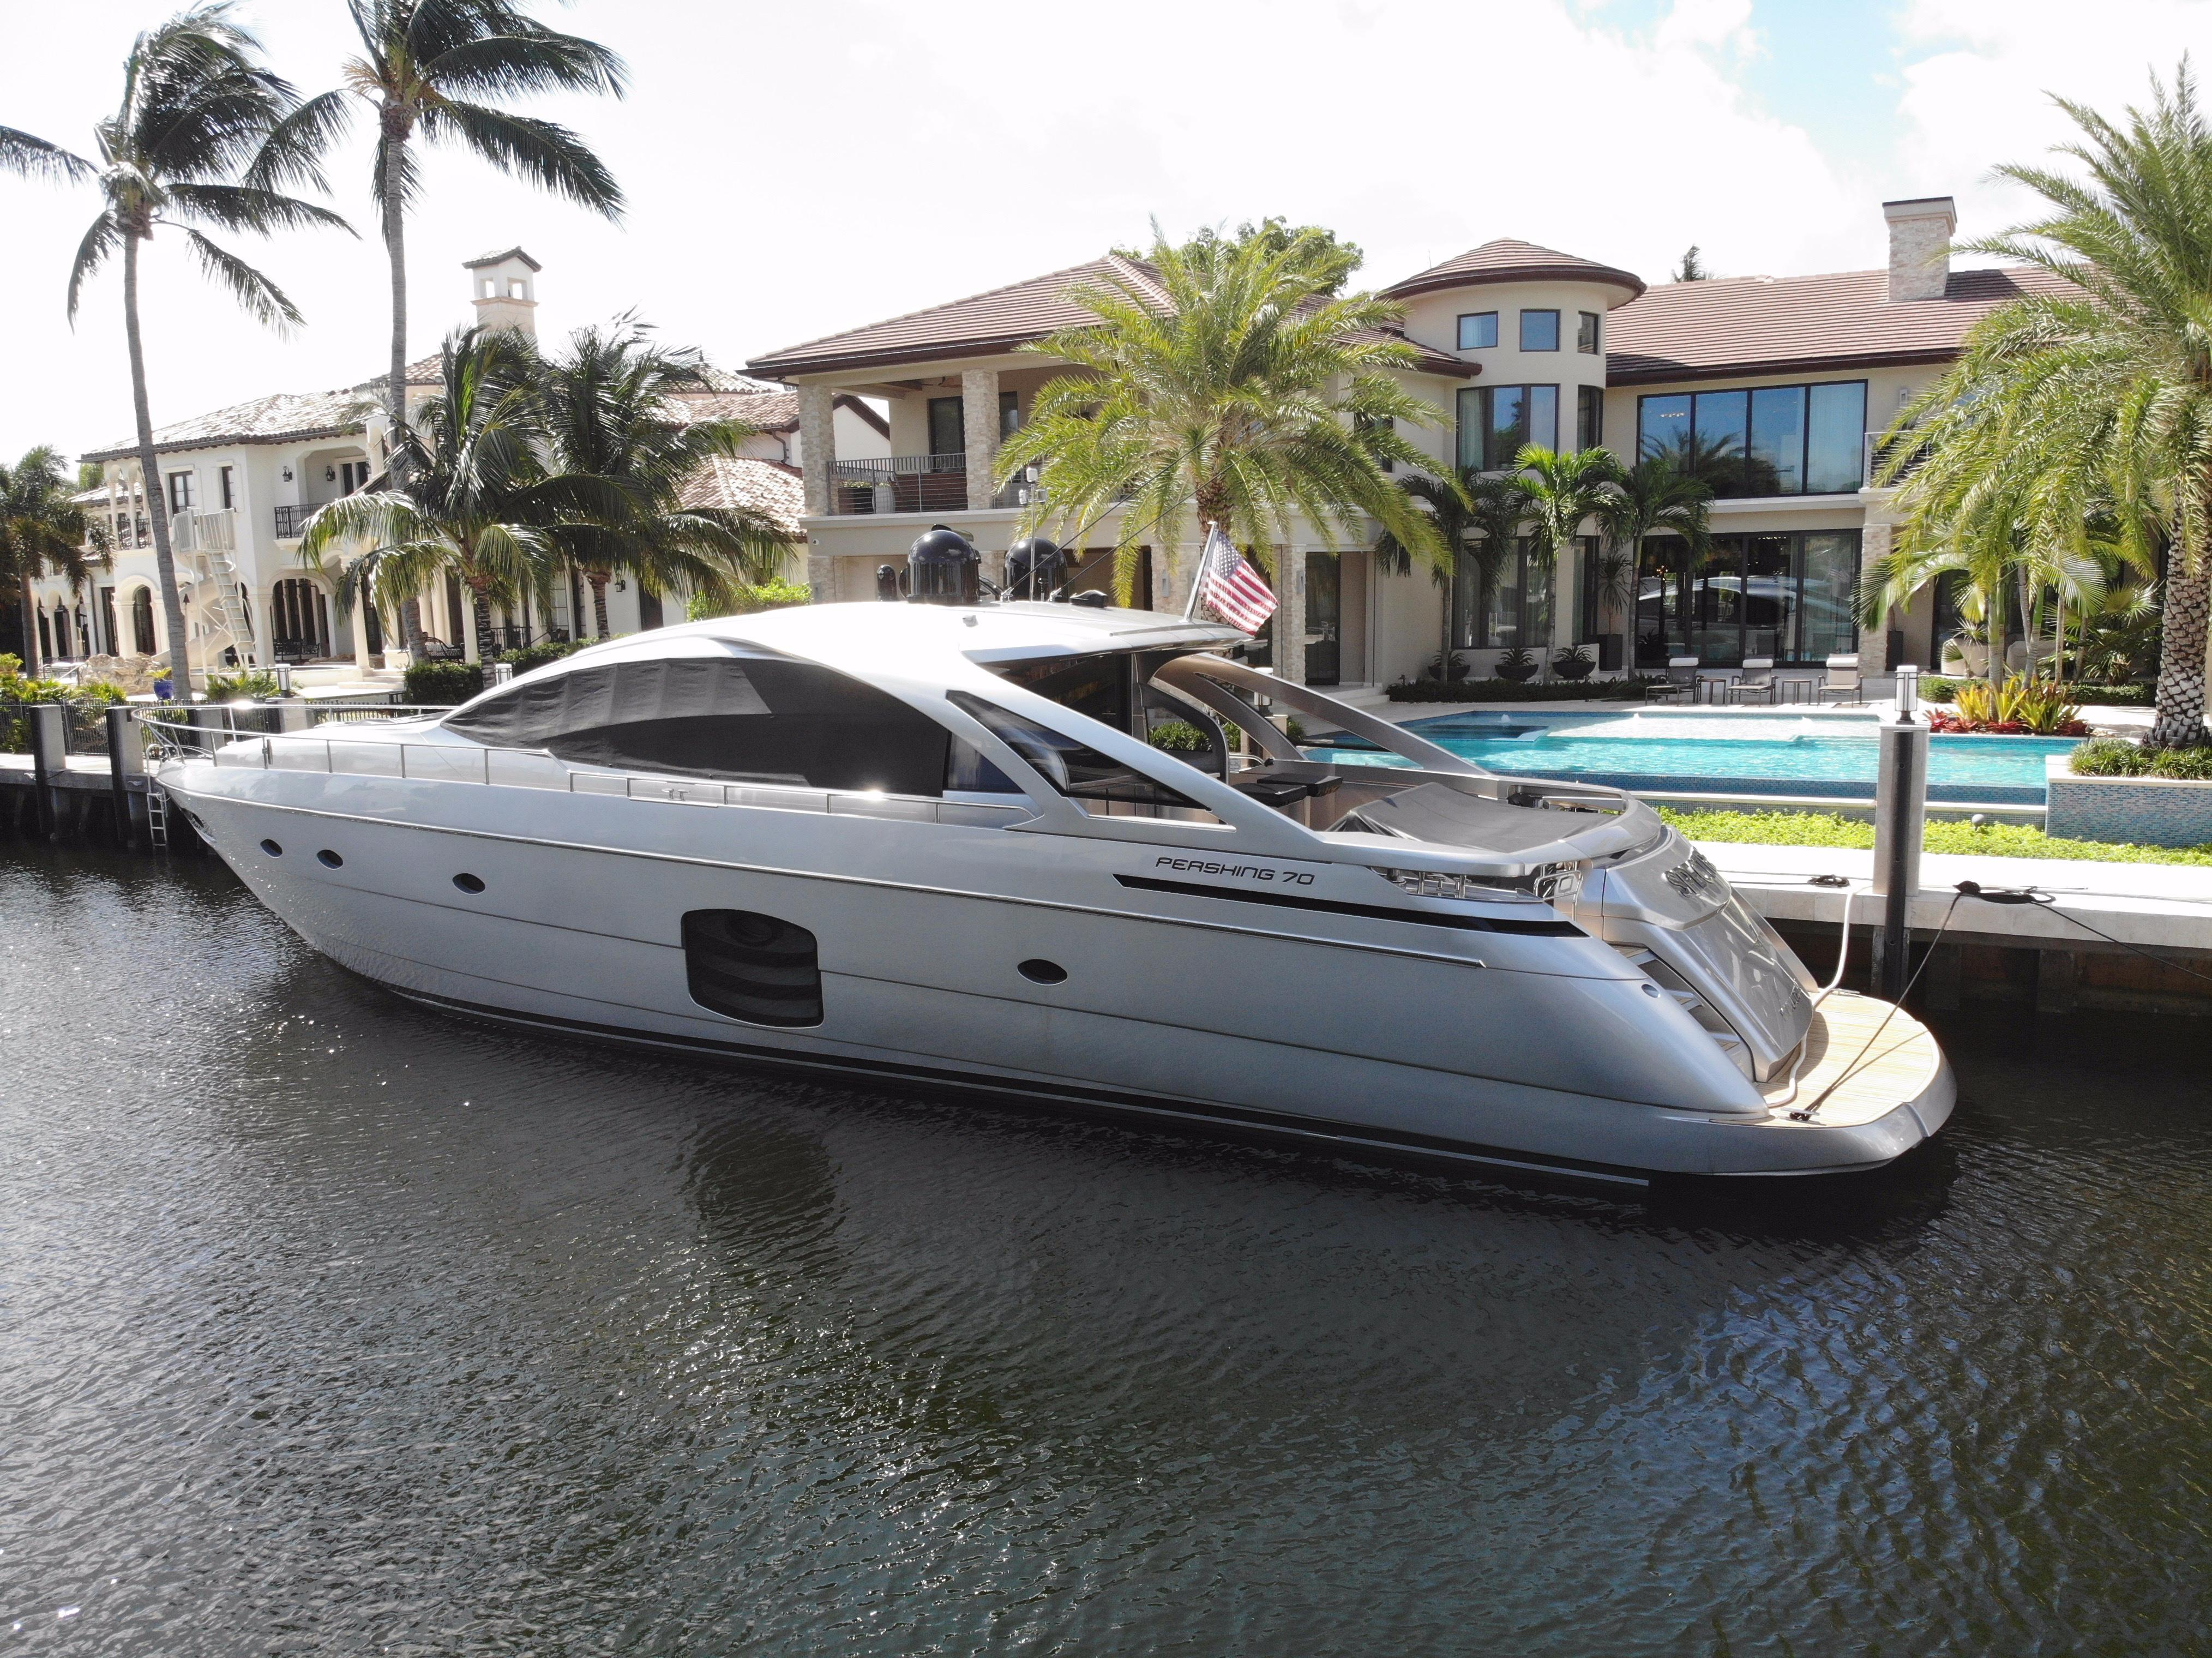 Picture Of:  70.4' Pershing 70 2016Yacht For Sale | 33